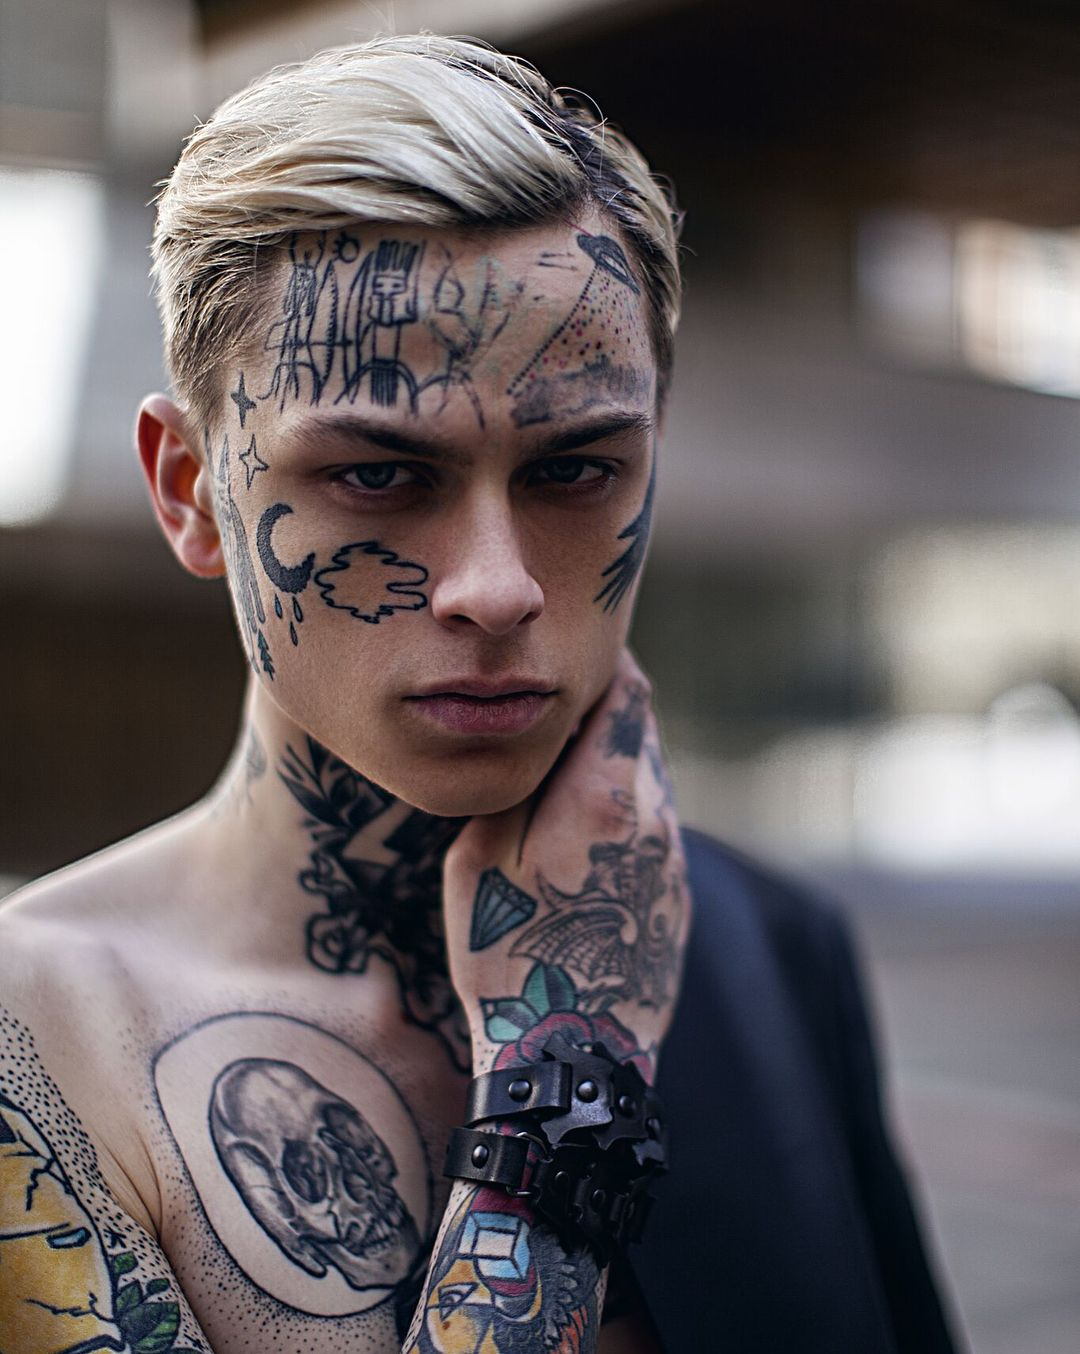 Cool Face Tattoo For Young Boy Model At Laviedekirill Tattoo